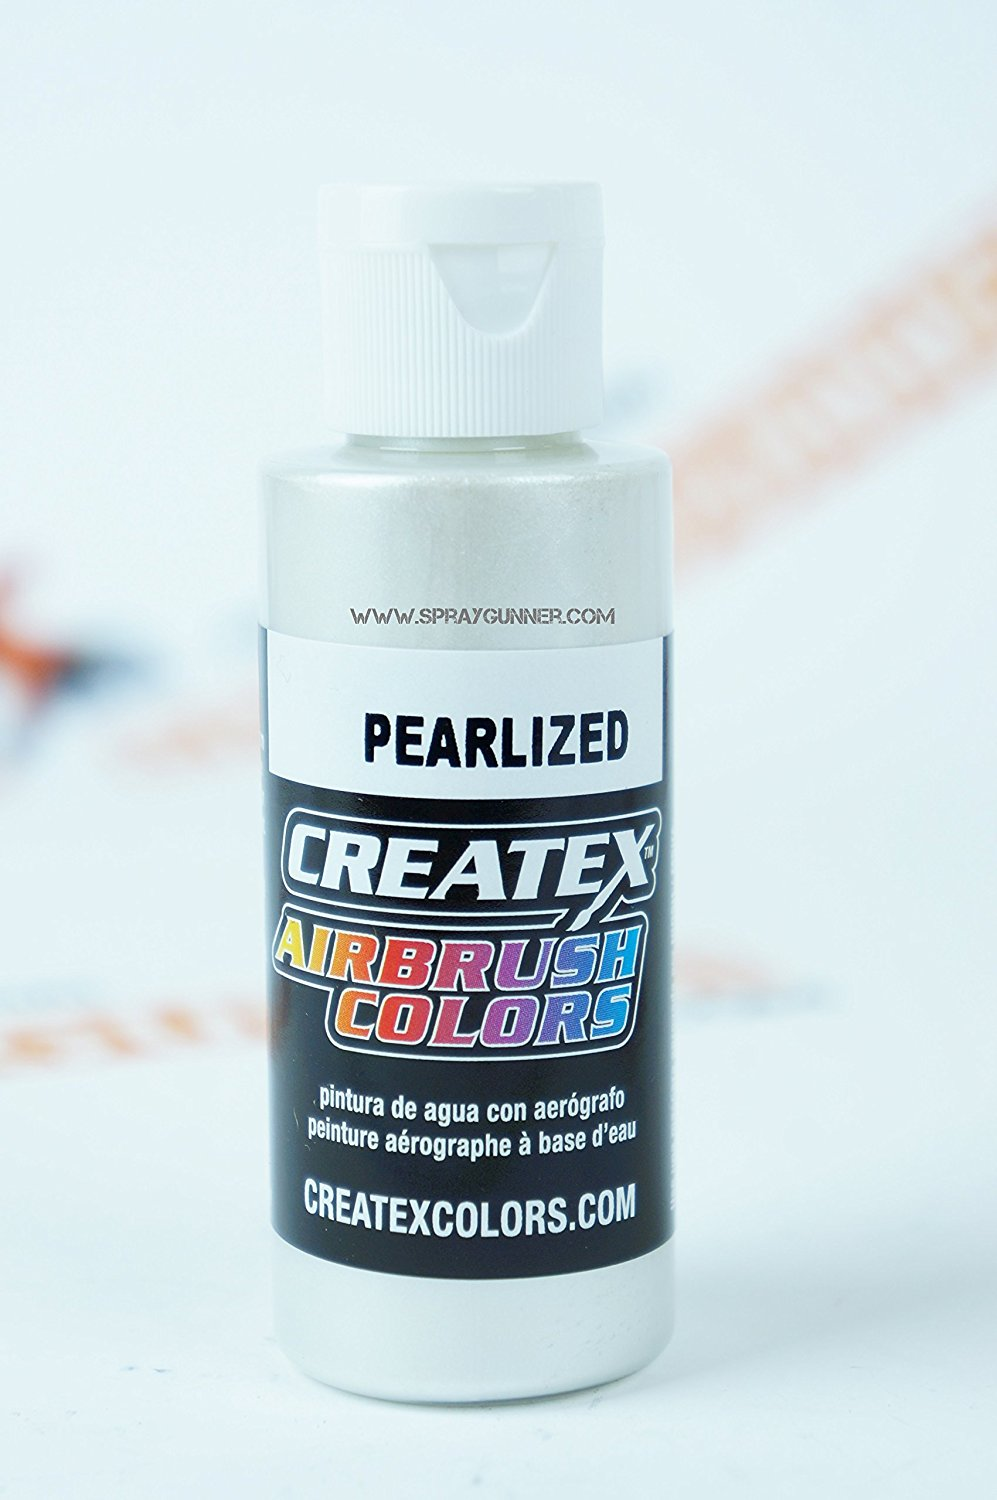 Createx Airbrush Colors Pearlized 5310 Pearl White 2oz. paint. by SprayGunner